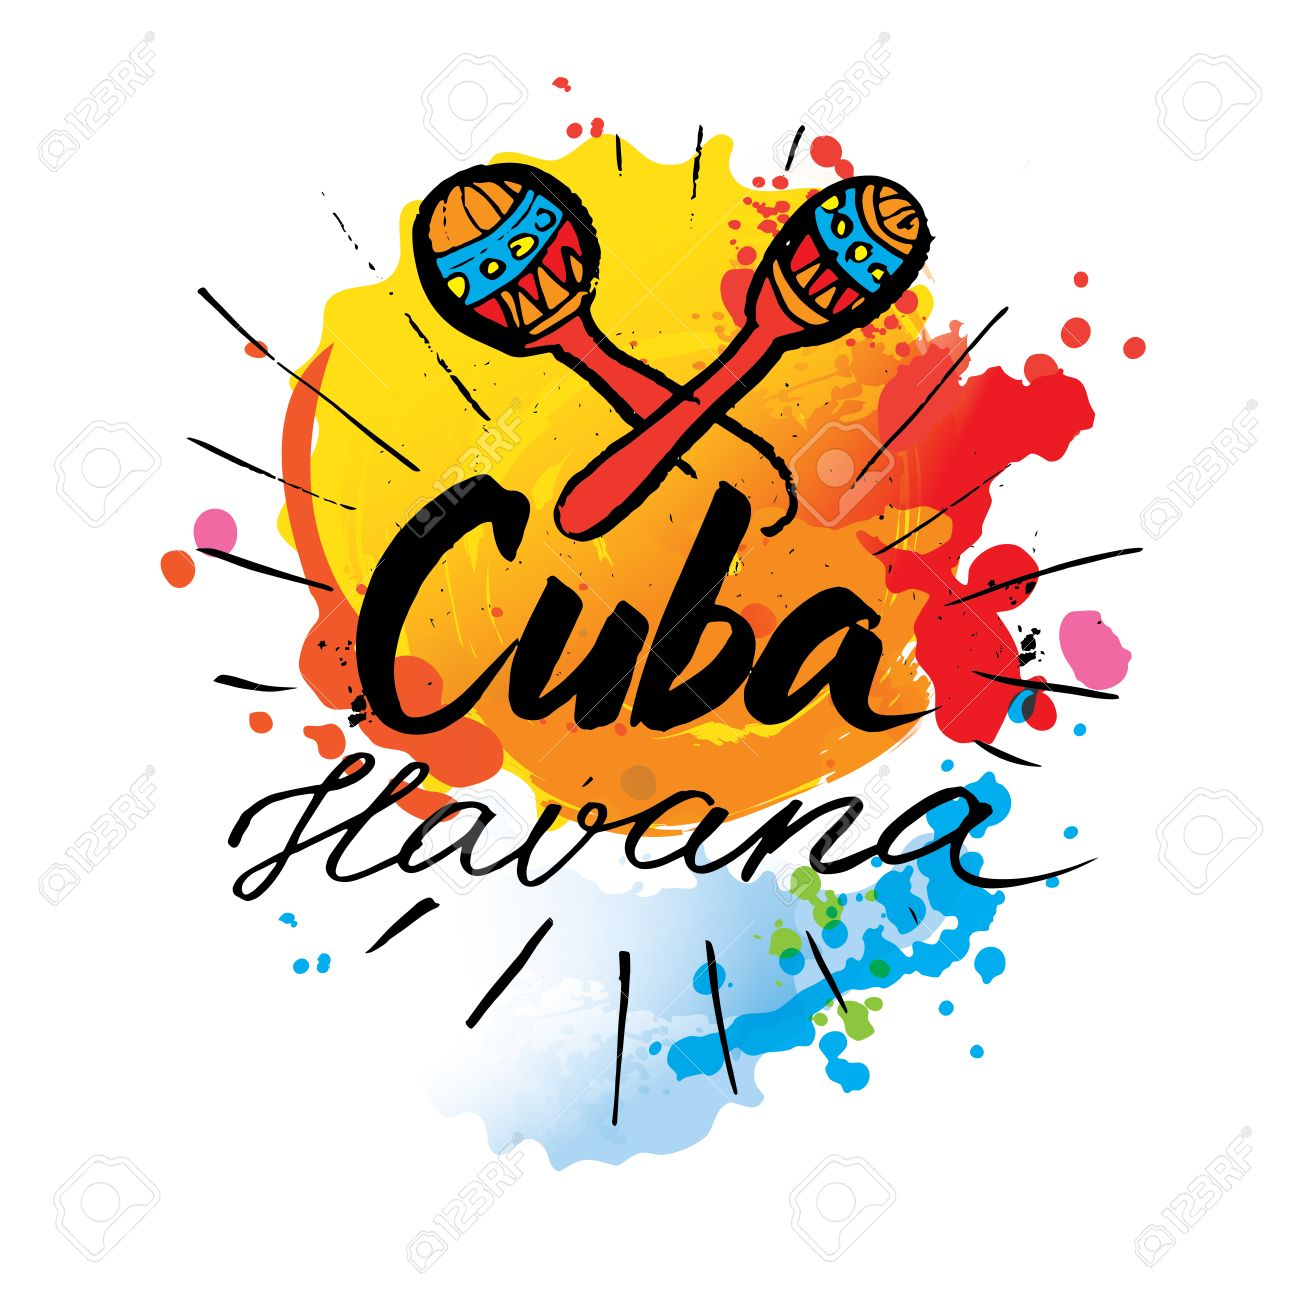 Cuba Havana logo. hand lettering and colorful watercolor elements...